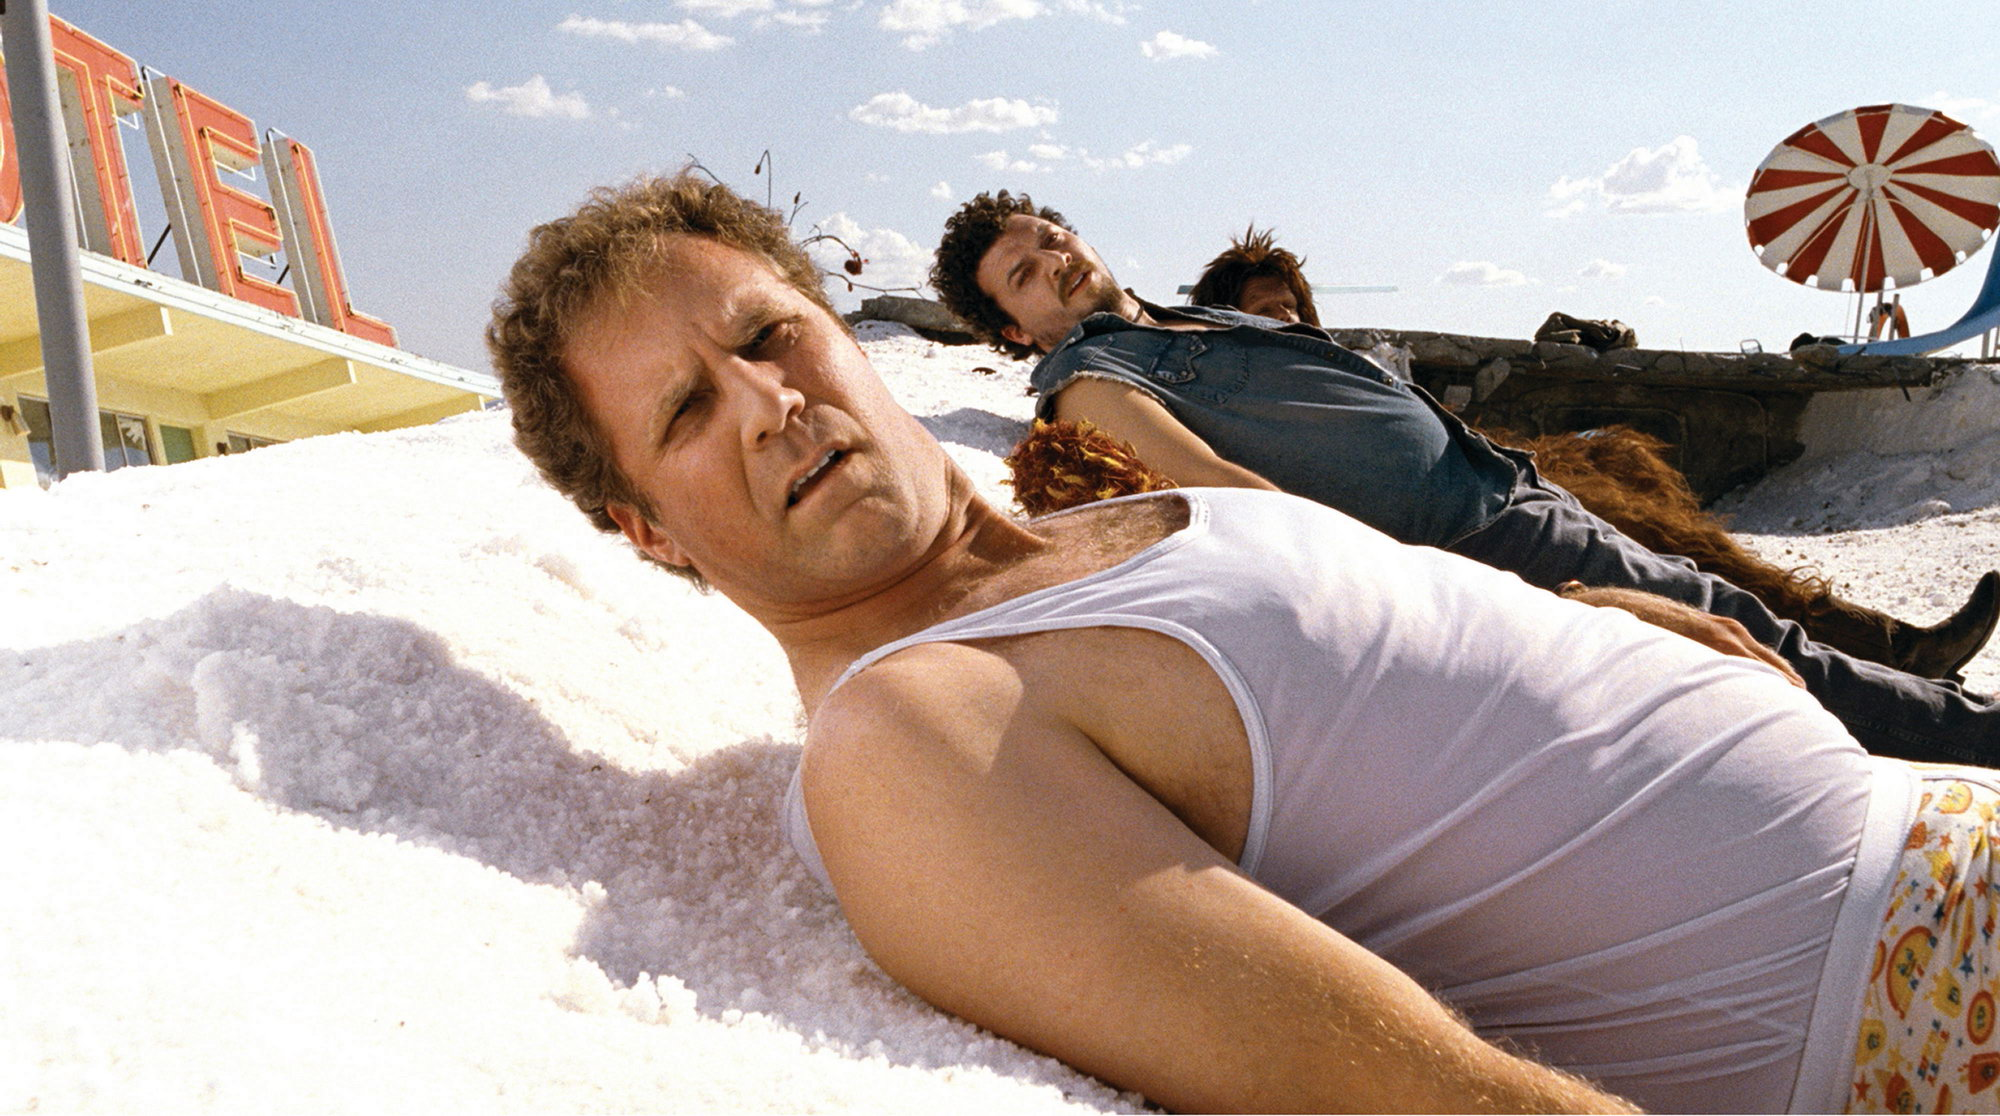 Will Ferrell HD Wallpapers | 7wallpapers.net